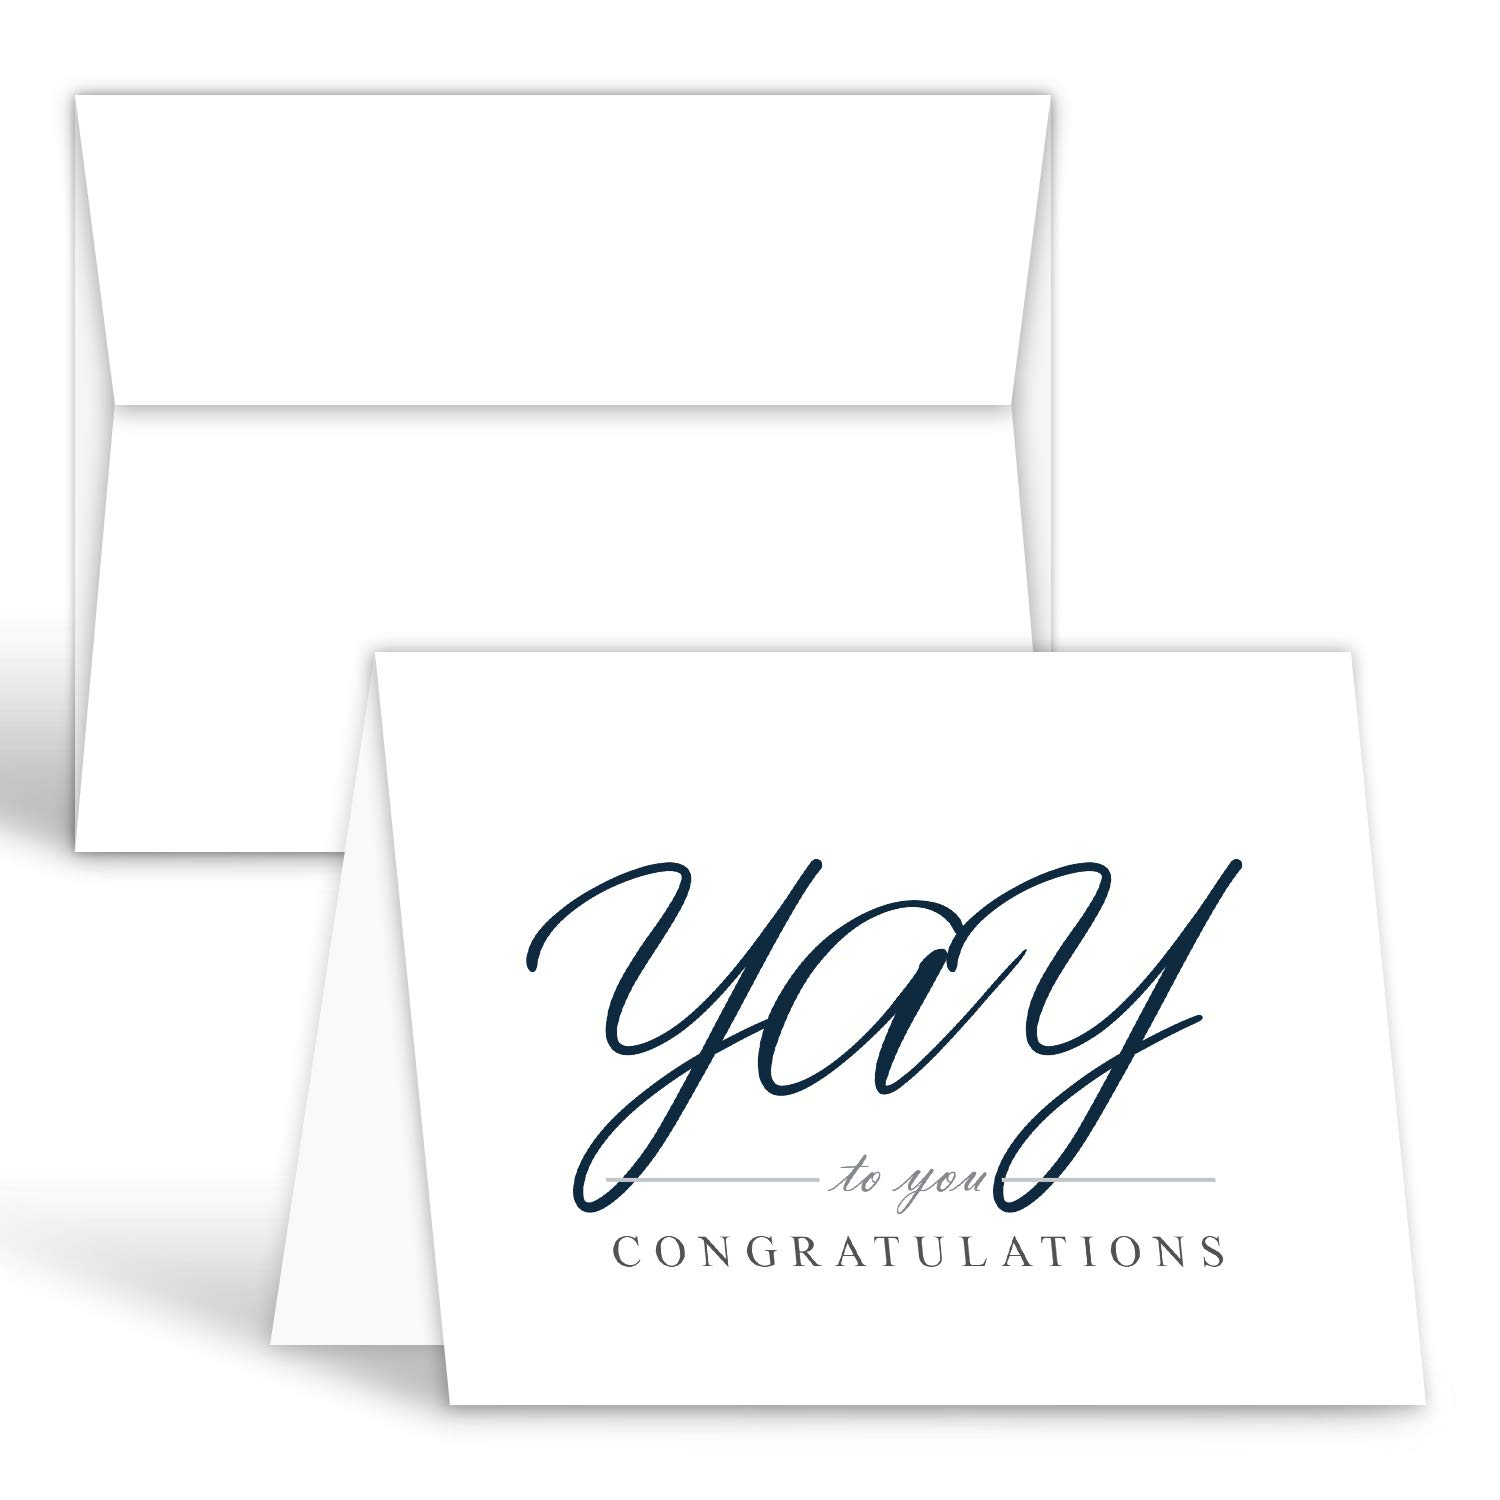 Congratulation Cards With Envelopes